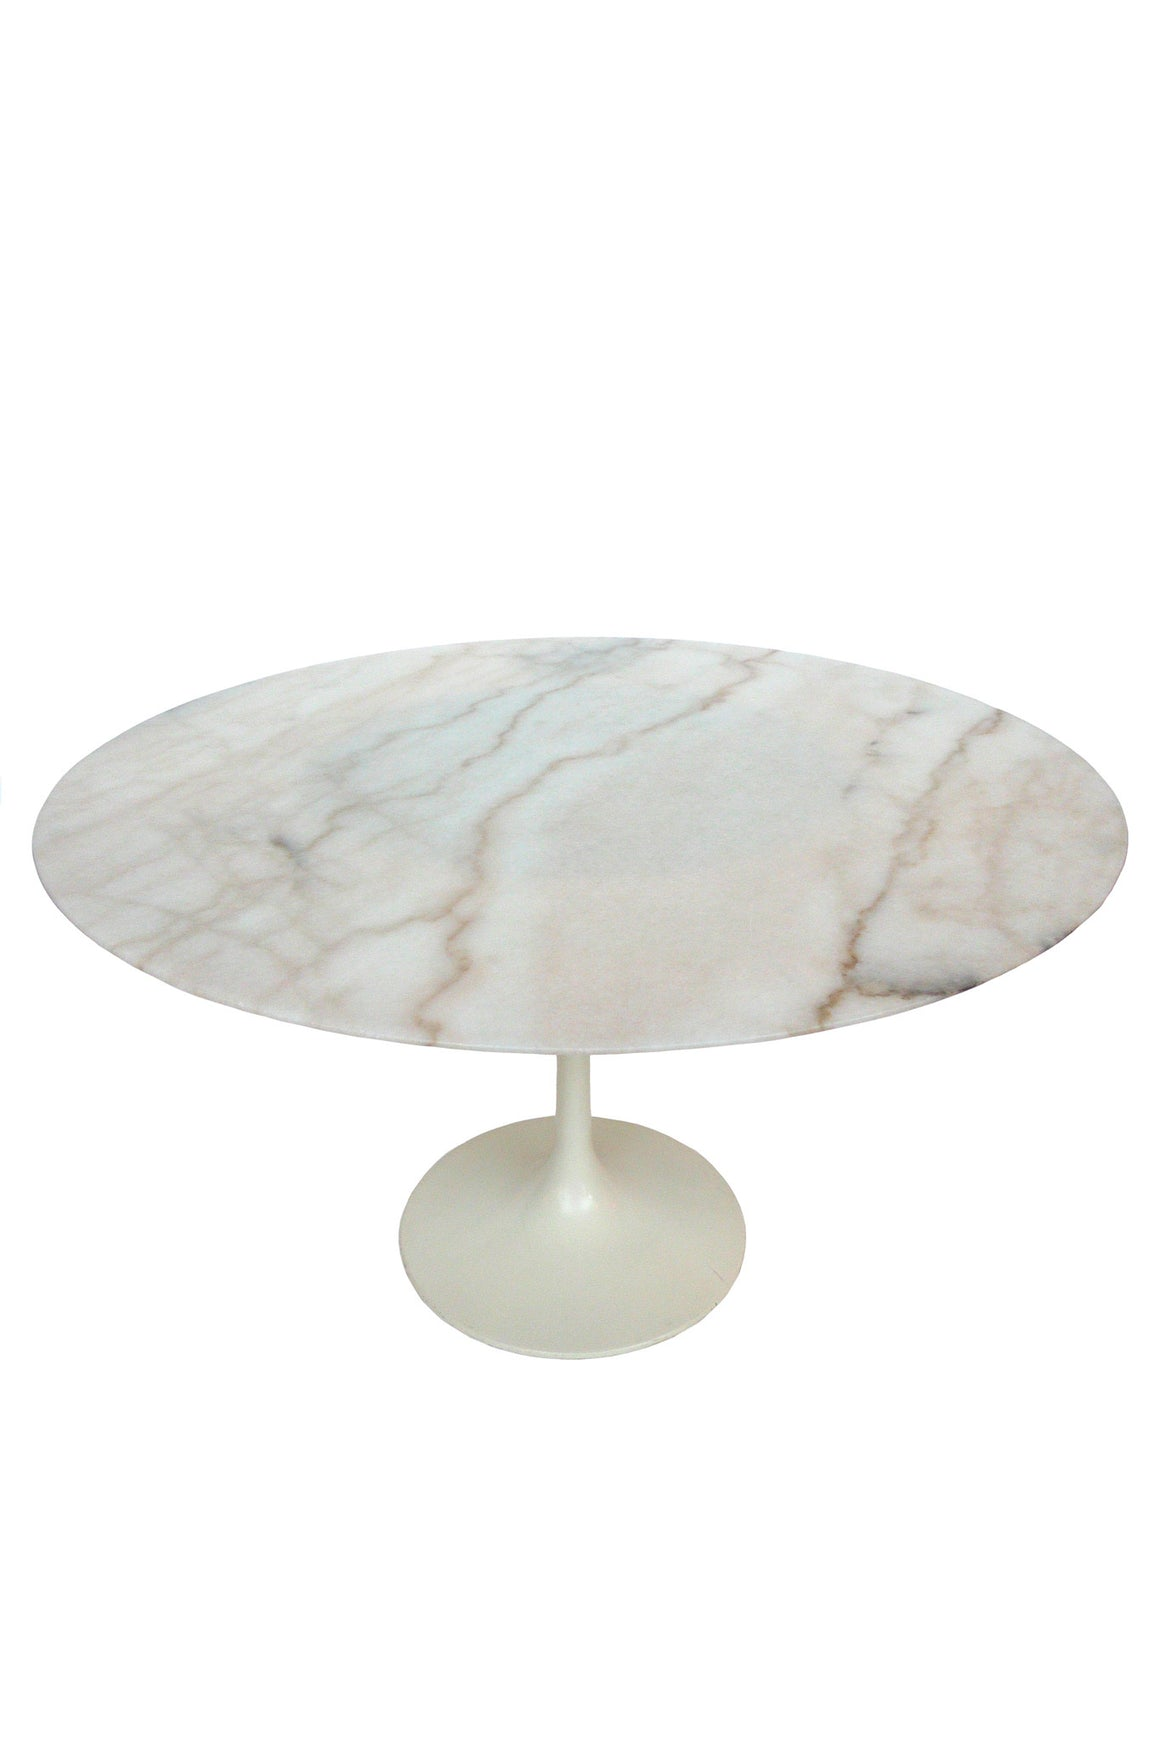 Tulip Marble Table in the Style of Eero Saarinen